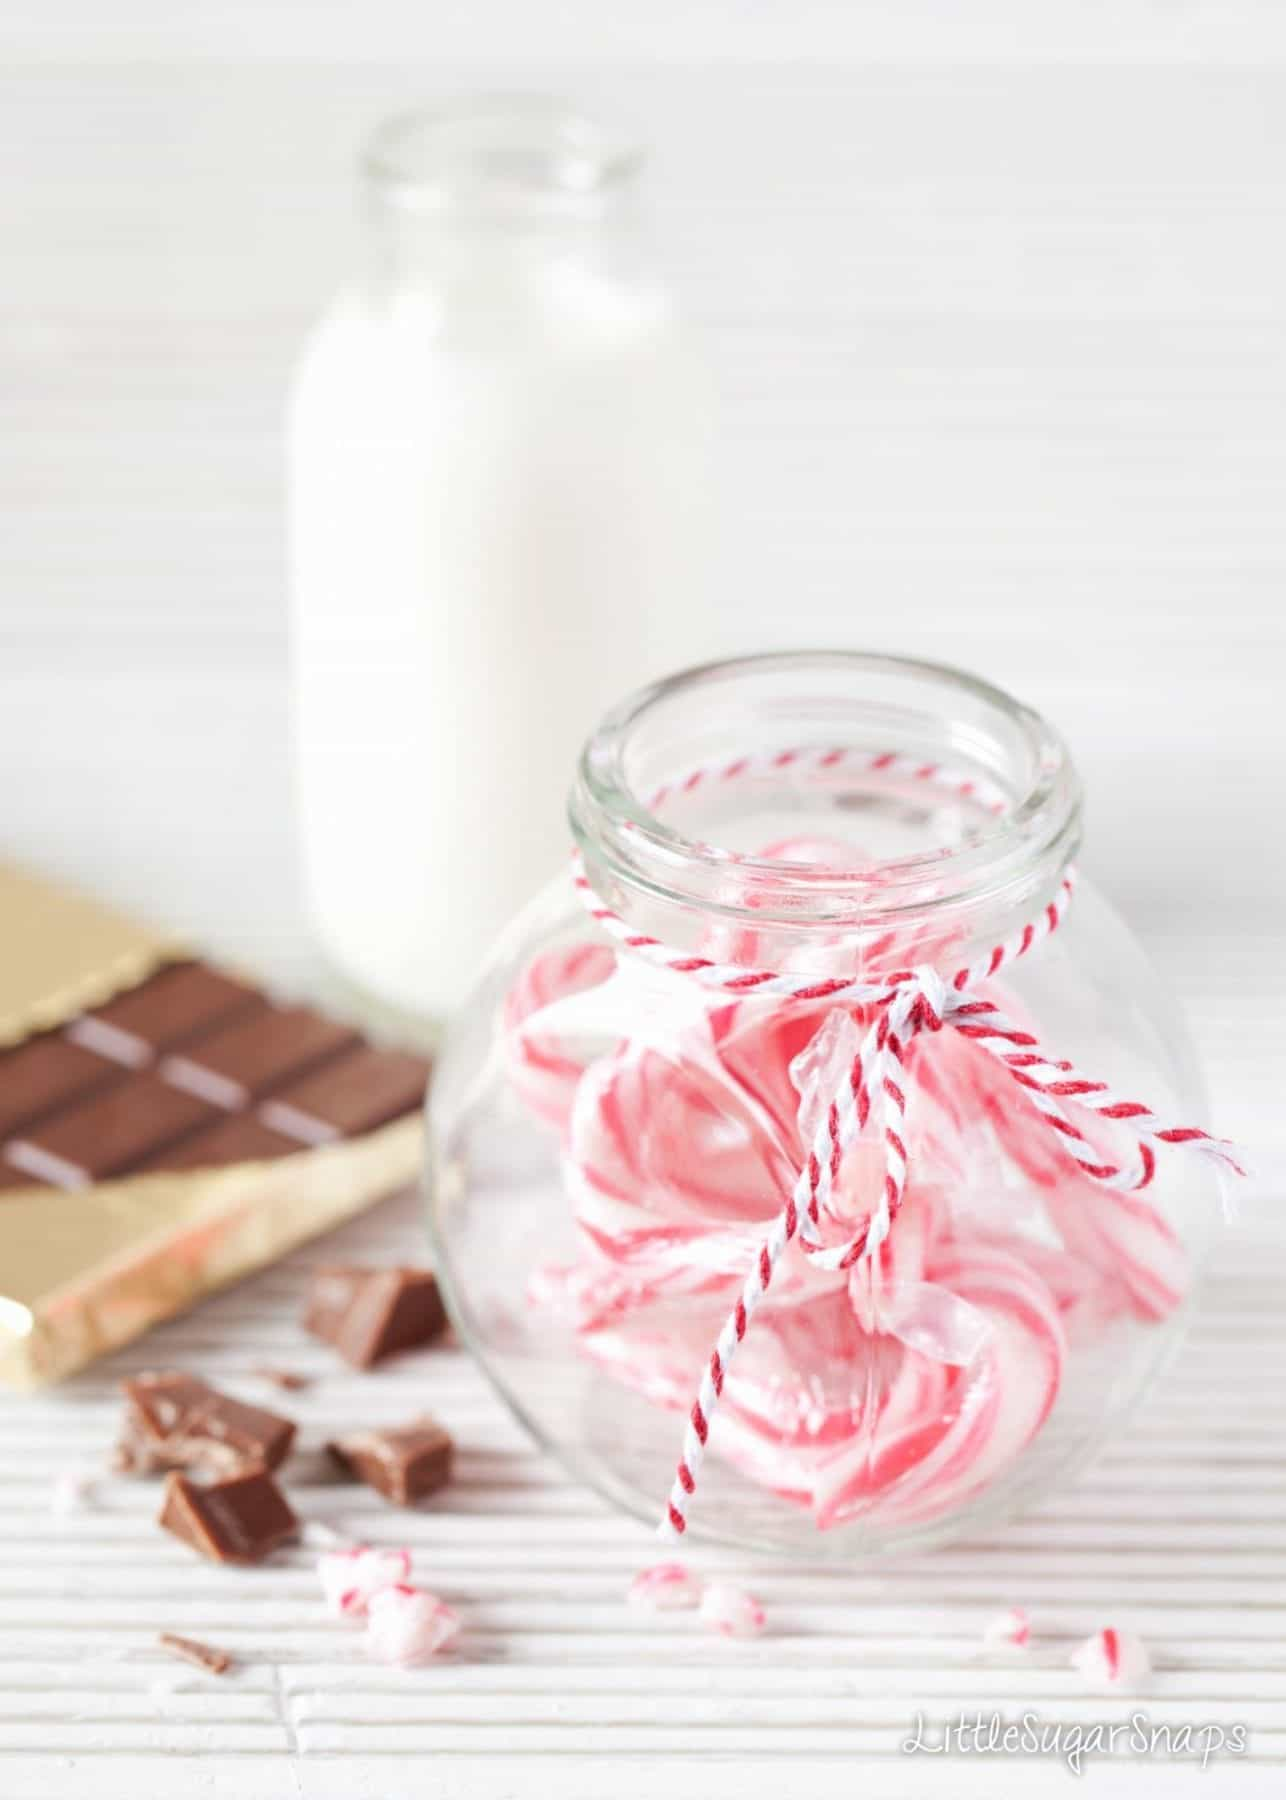 A jar of candy canes, a bottle of milk and a bar of chocolate